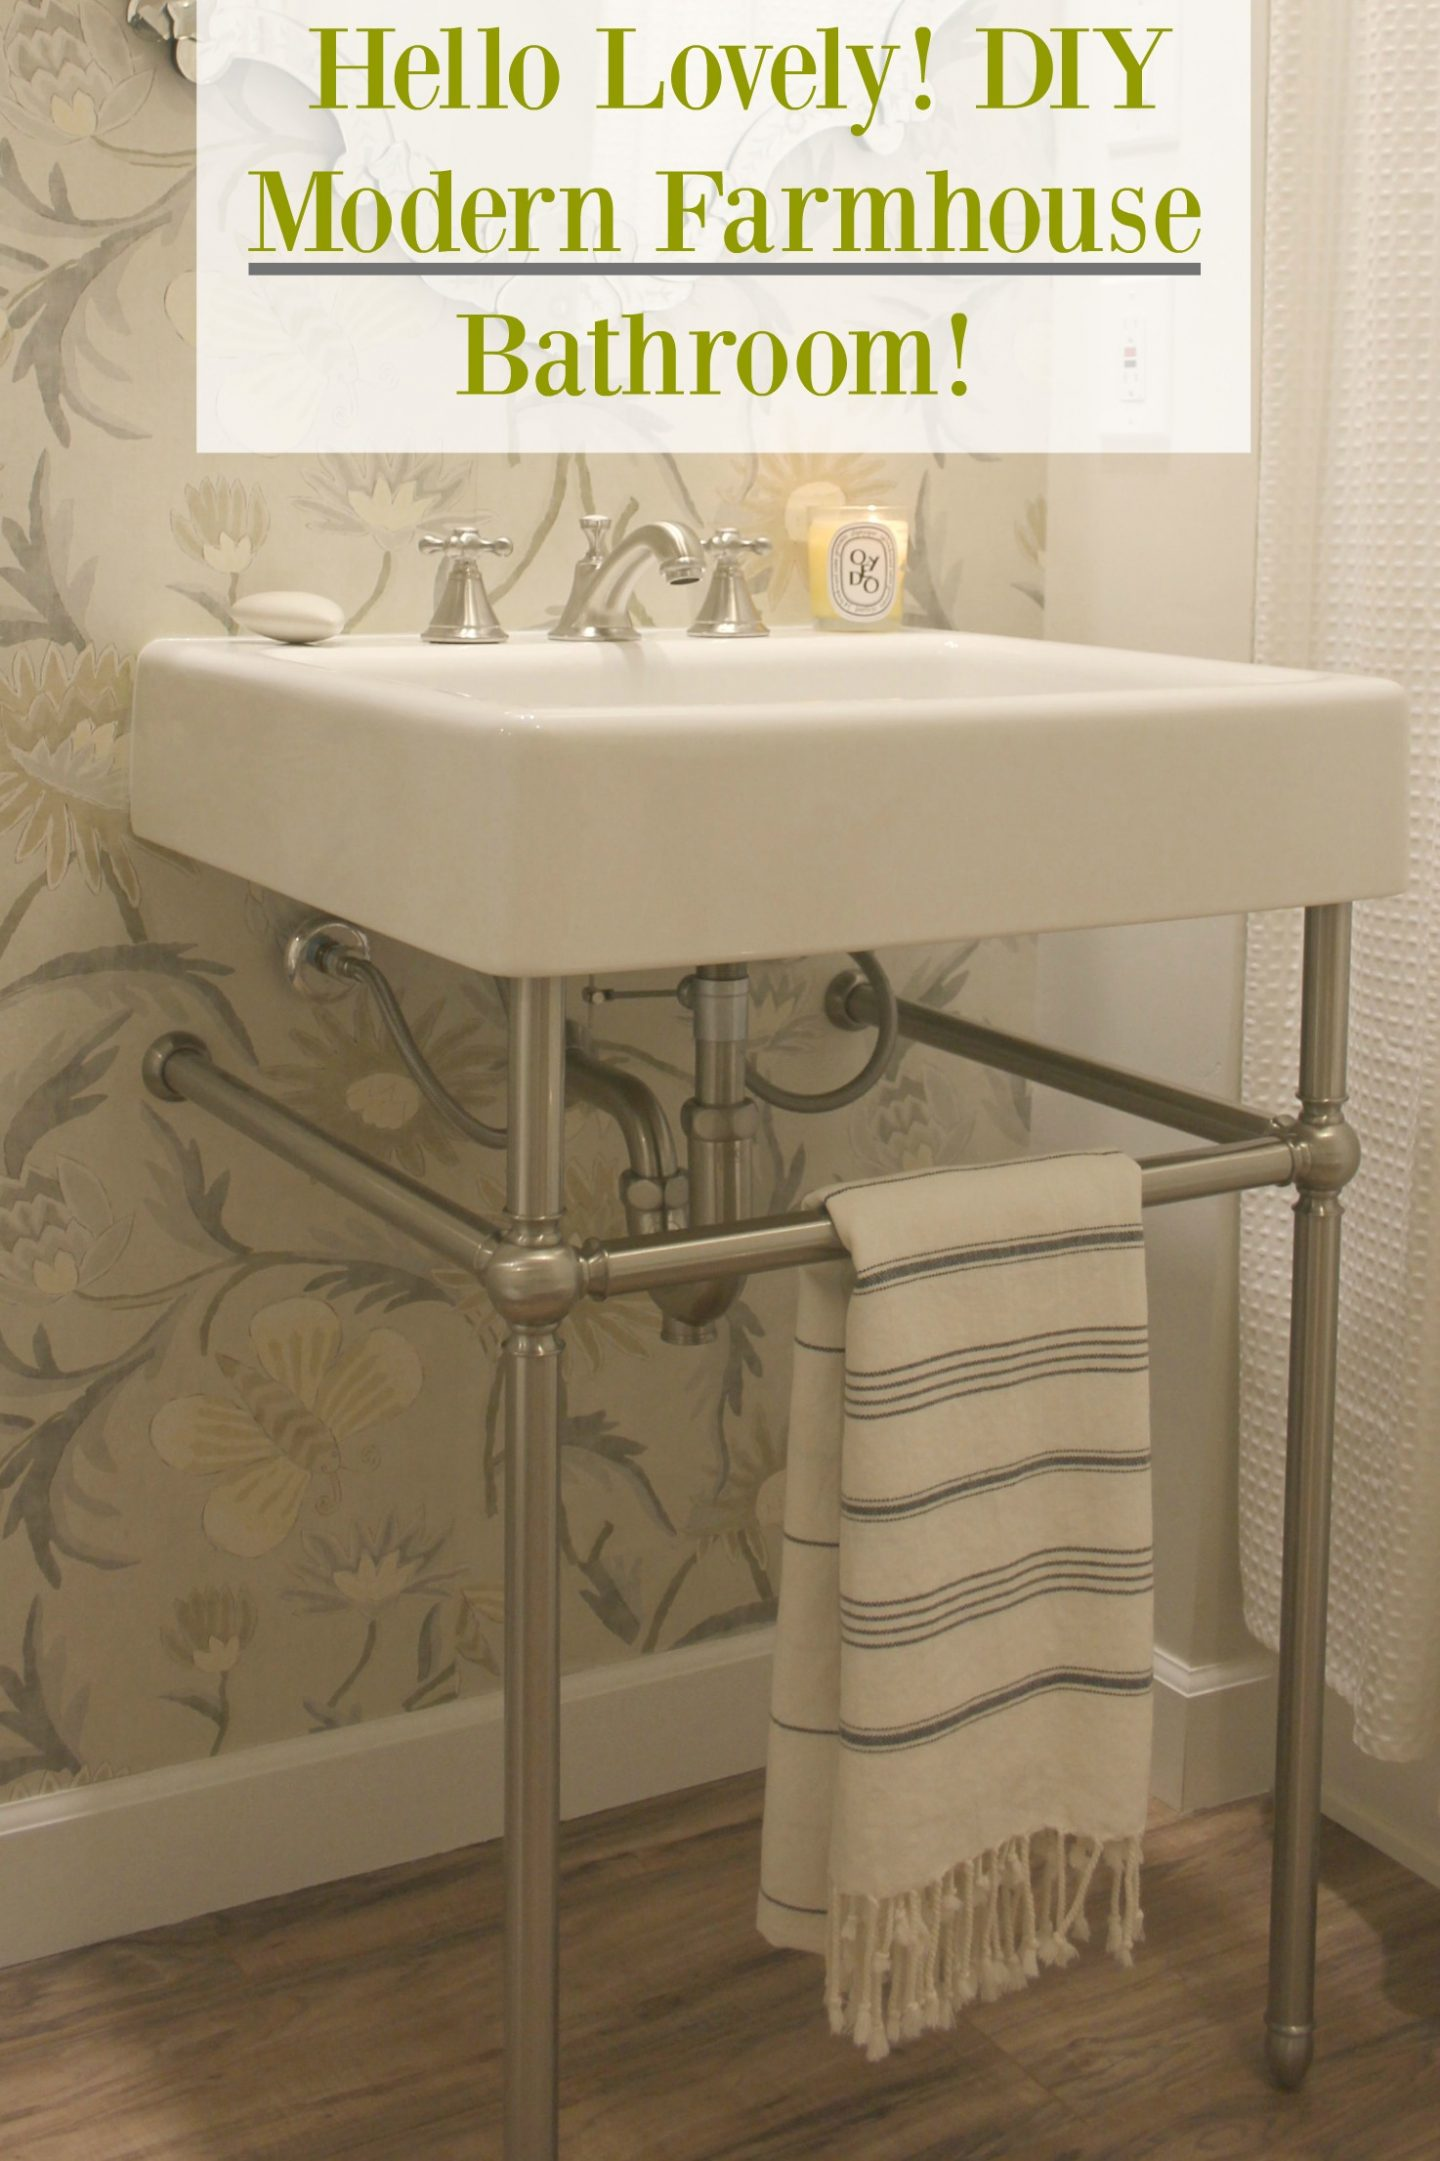 Hello Lovely! DIY Modern Farmhouse Bathroom!